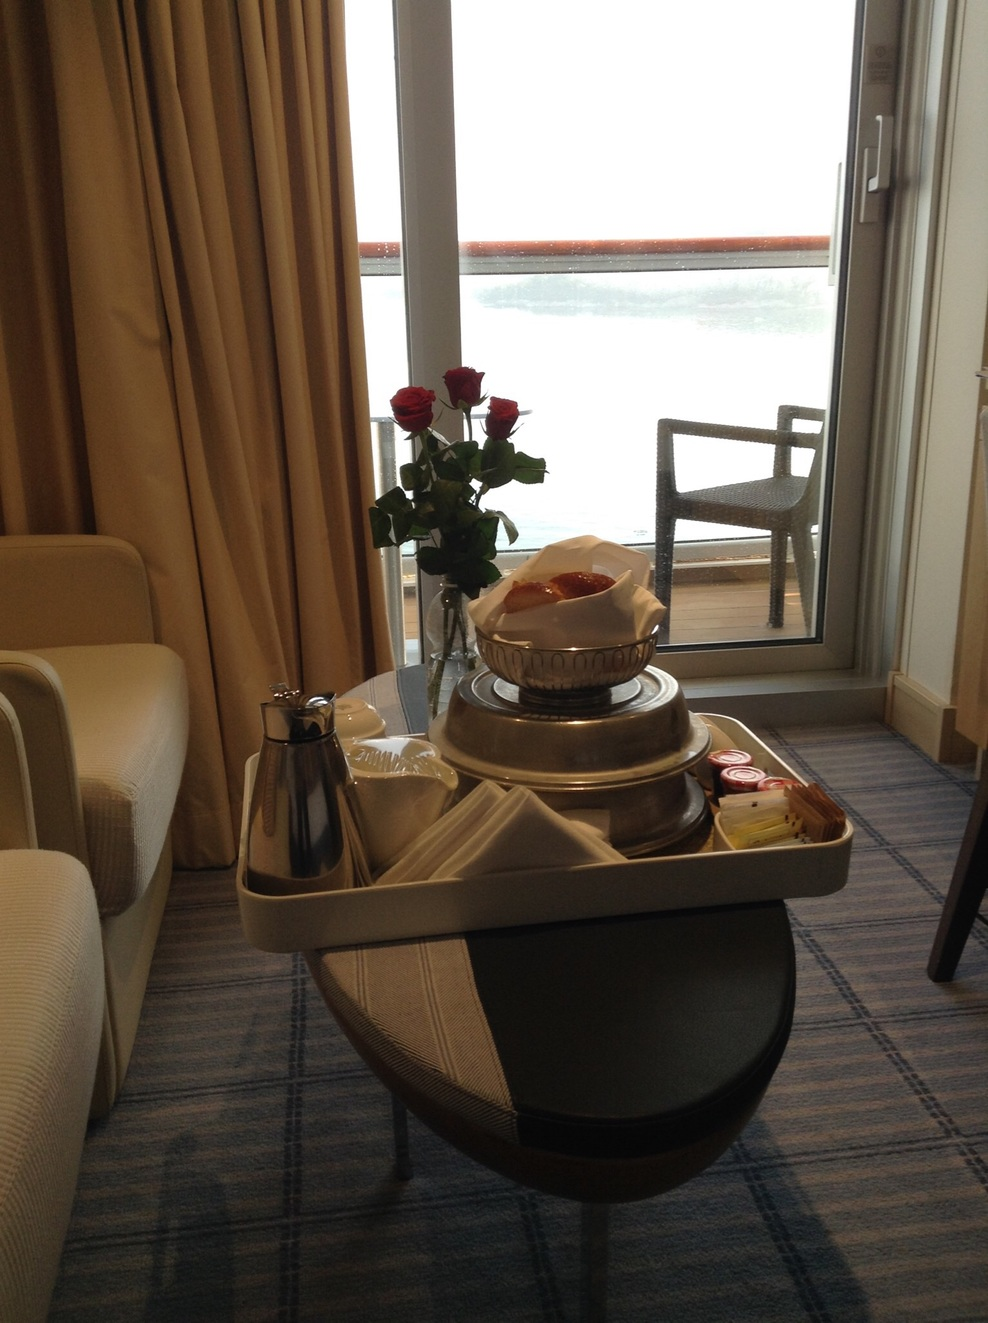 Our first morning aboard was a restful room service delight.